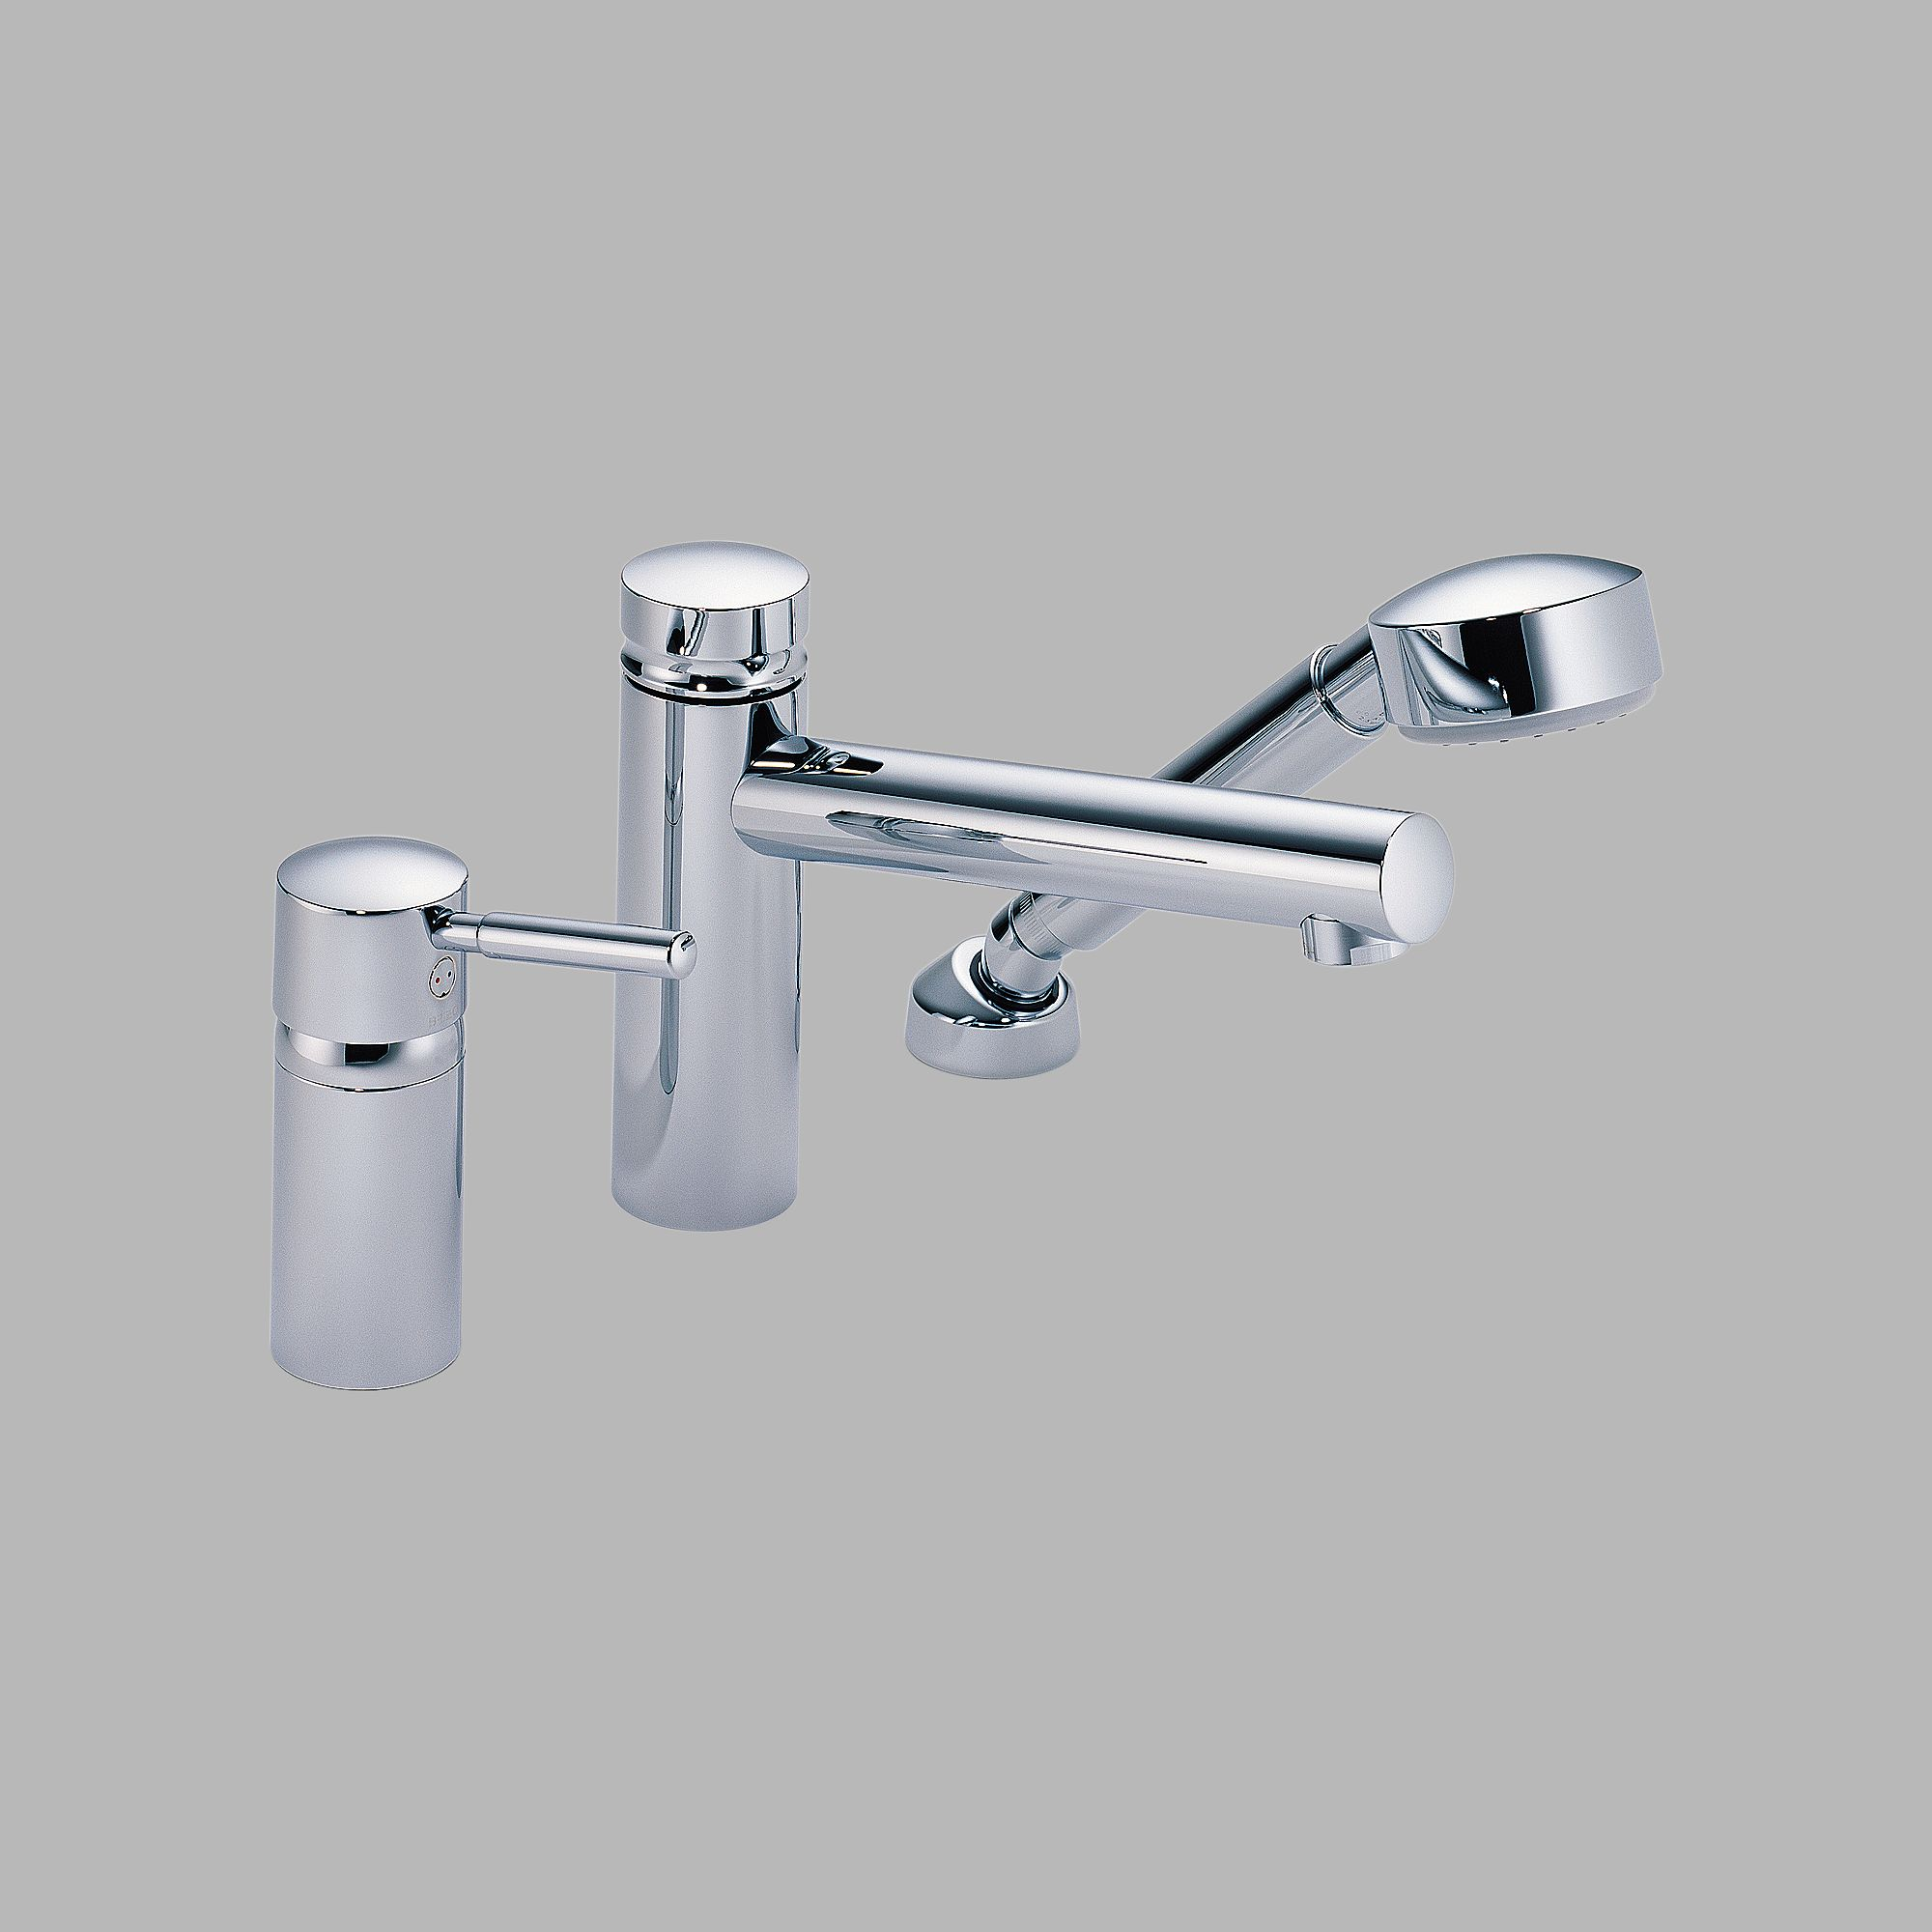 67214 Brizo Quiessence Roman Tub with Hand Shower - Trim And Rough